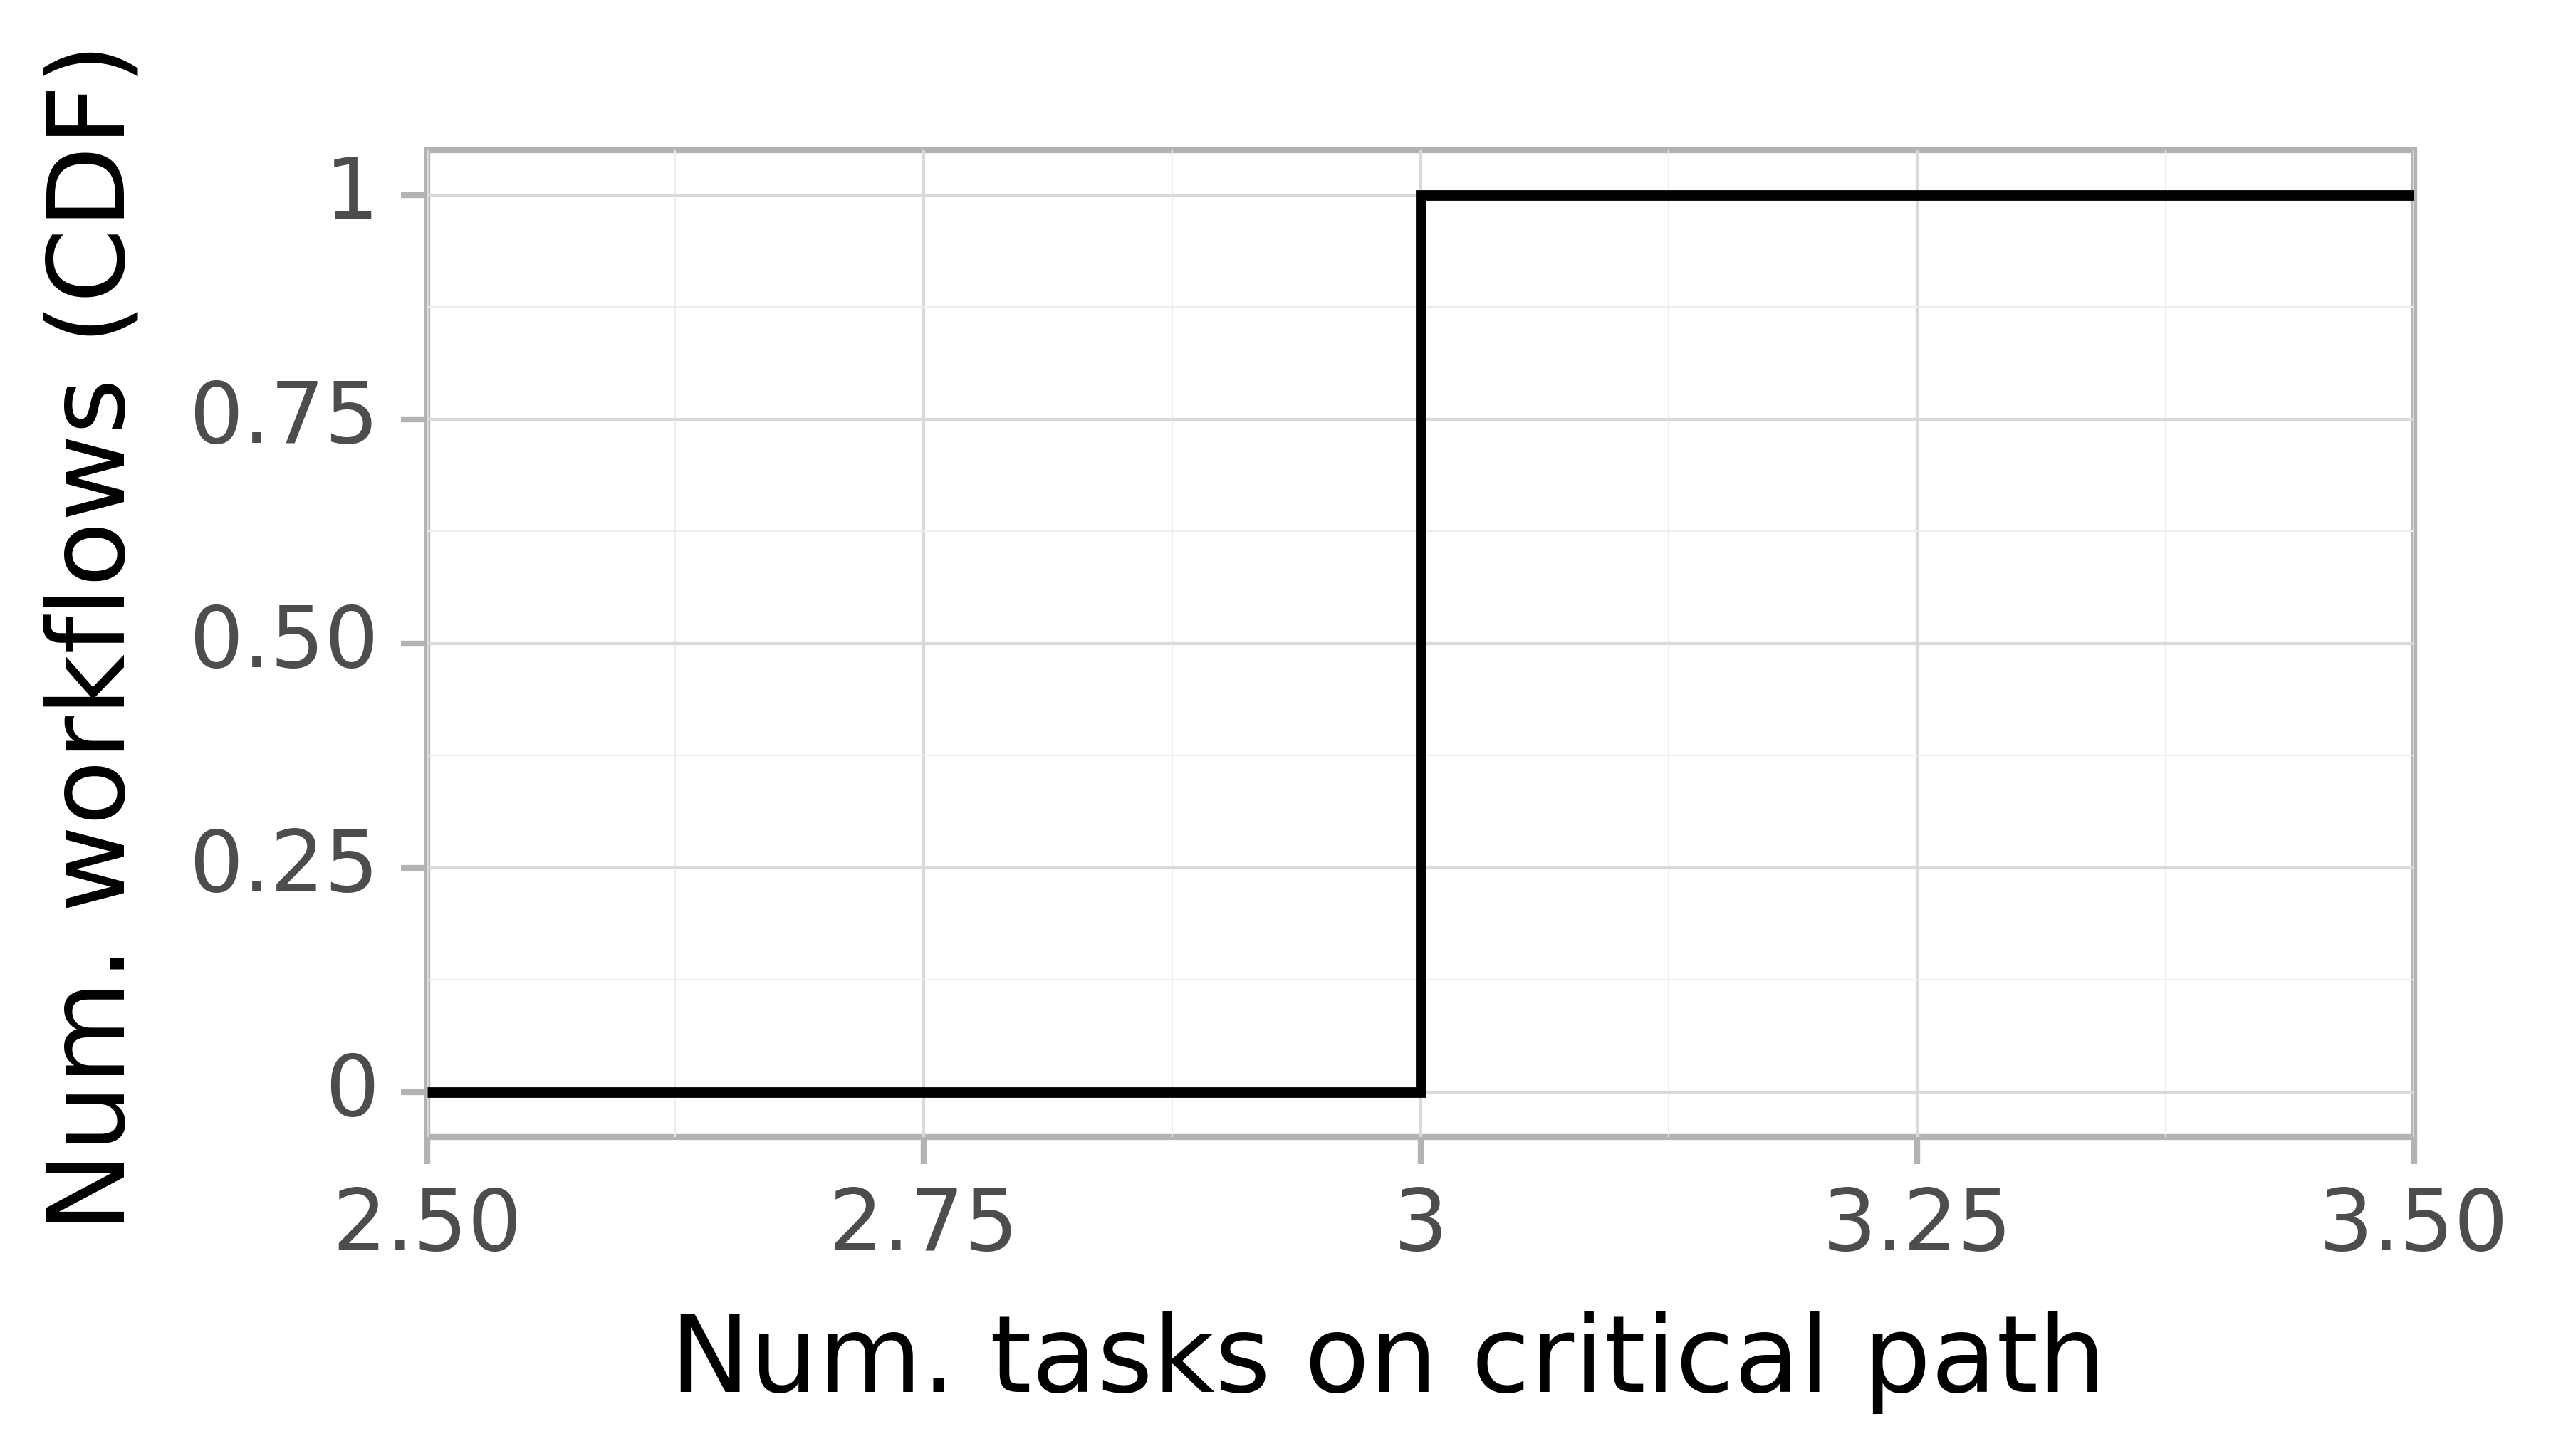 Job critical path task count graph for the askalon-new_ee29 trace.